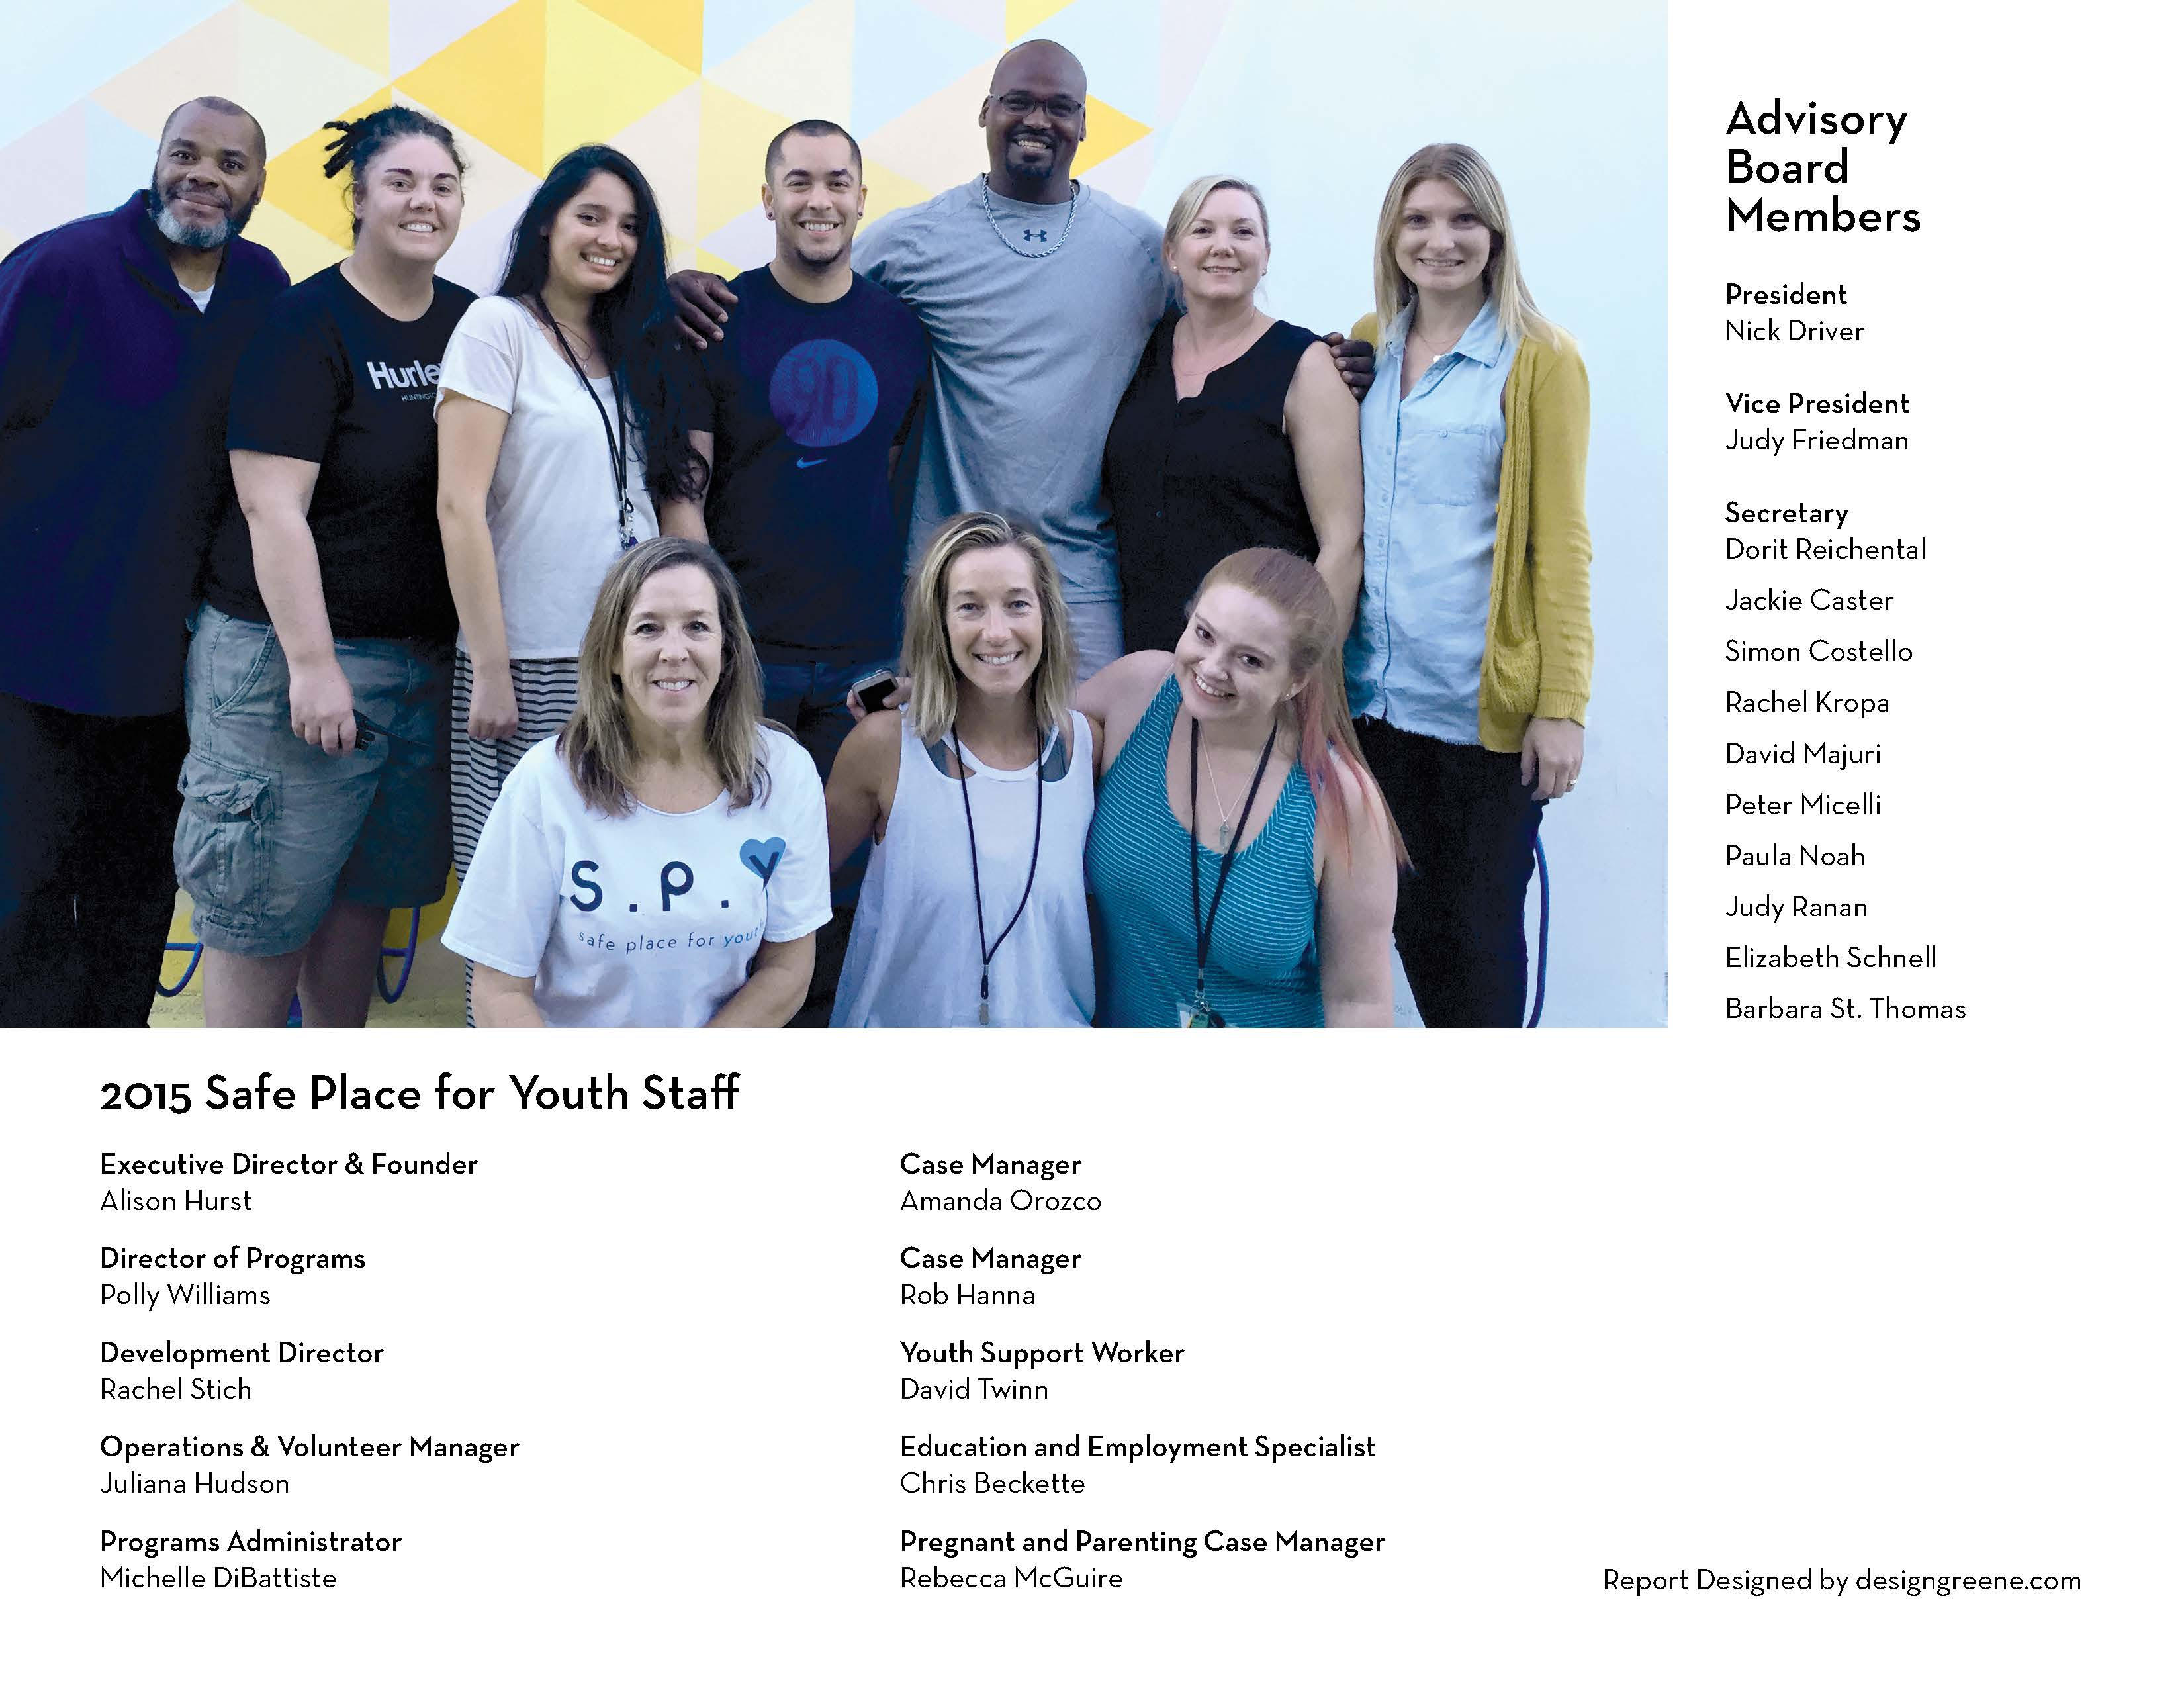 Safe_Place_for_Youth_2015_Annual_Report1_Page_23.jpg